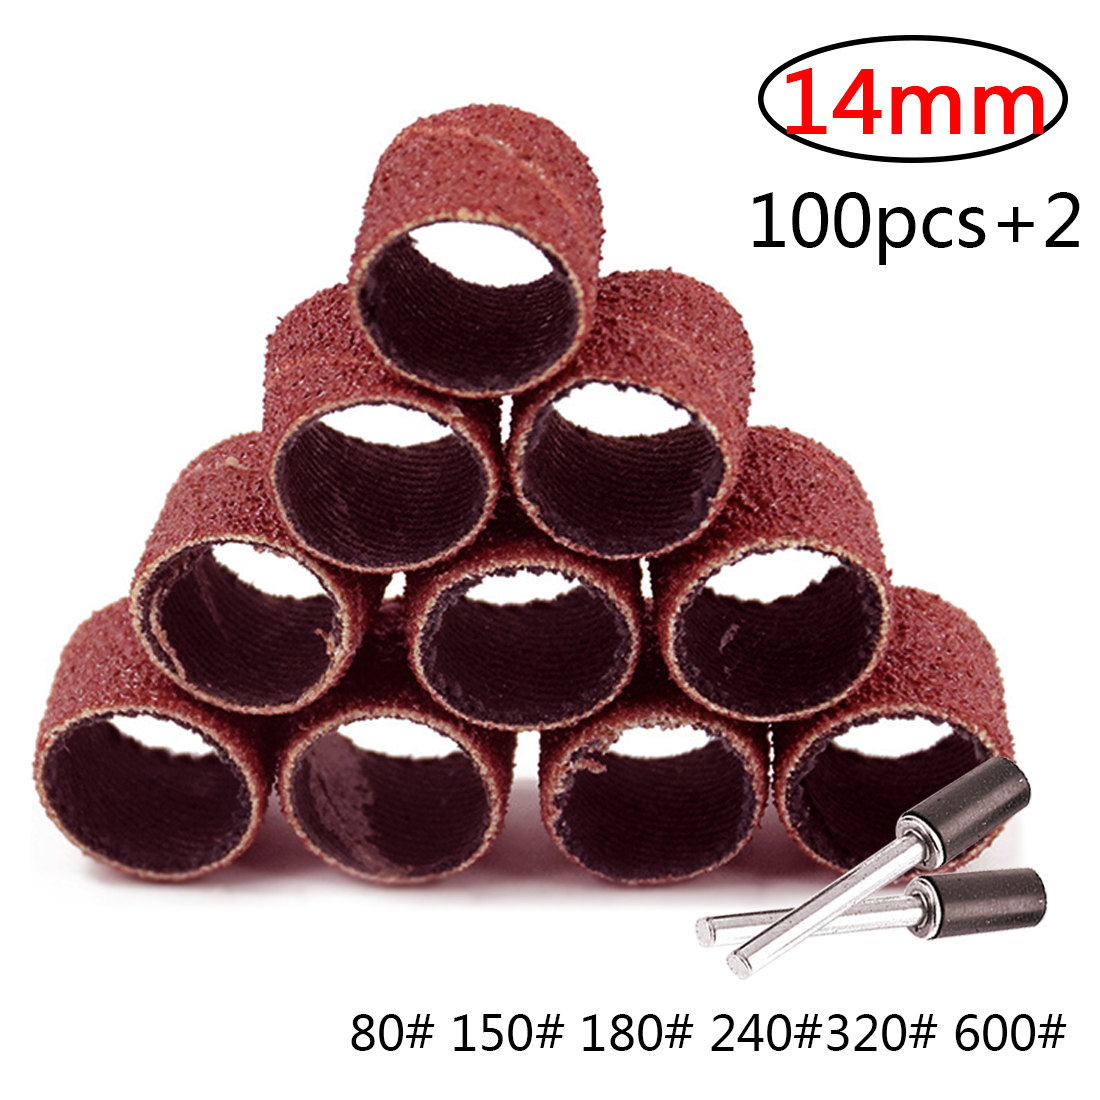 Sandpaper Circle Drum Sanding Kit Sanding Bands With 2 Mandrel For  Dremel Accessories Rotary Tool Nail Drill Bit Abrasive Tool